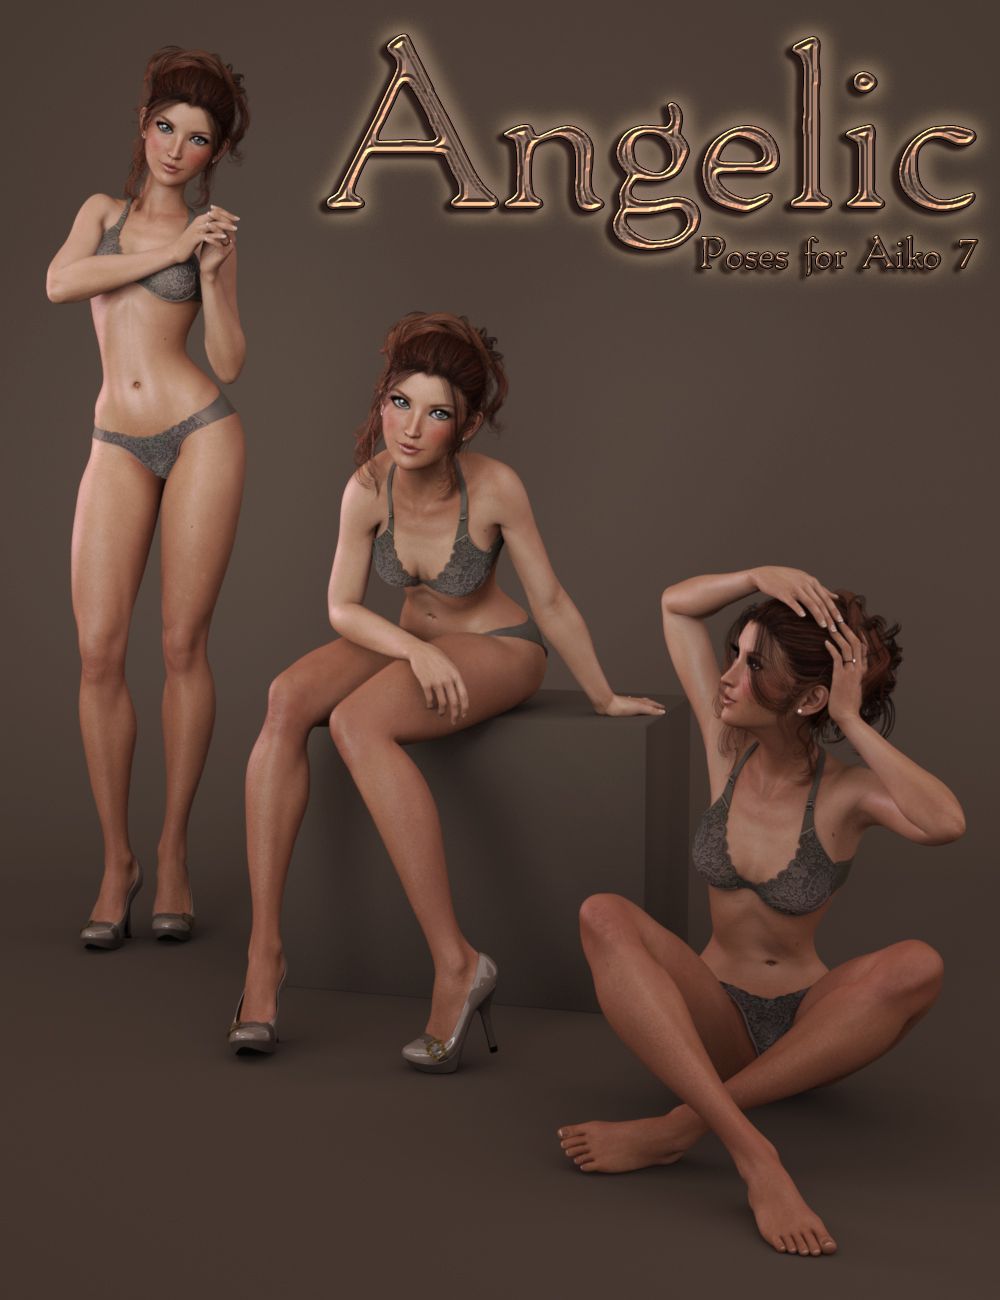 Angelic for Aiko 7 by: lunchlady, 3D Models by Daz 3D